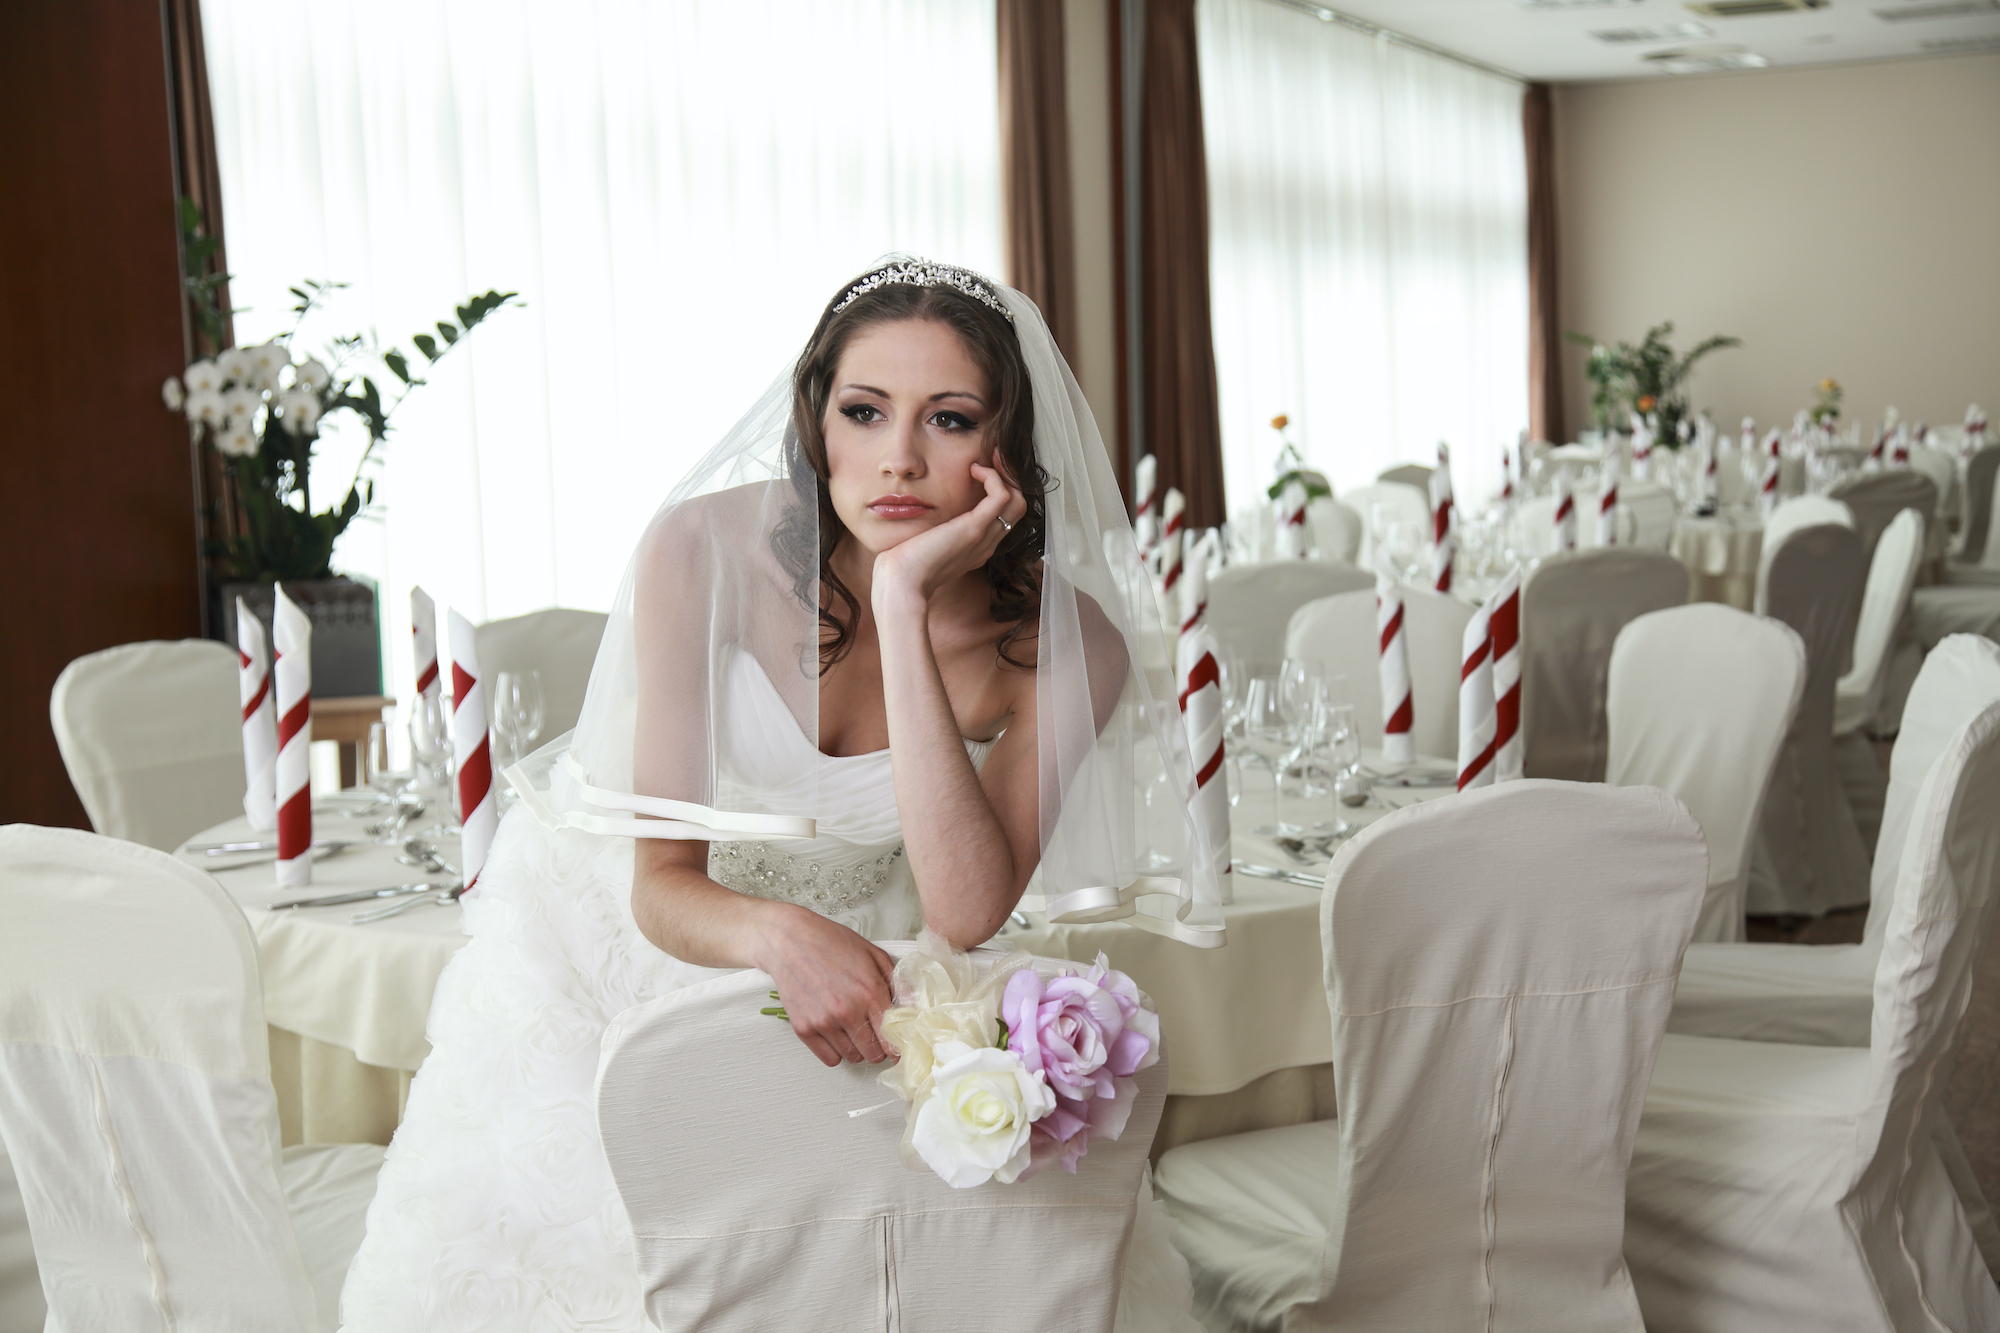 Wedding Caterer Shares Creepy Story About Groom S Inappropriate Behavior During Cake Cutting Ceremony I Booked It Away From Them Instantly